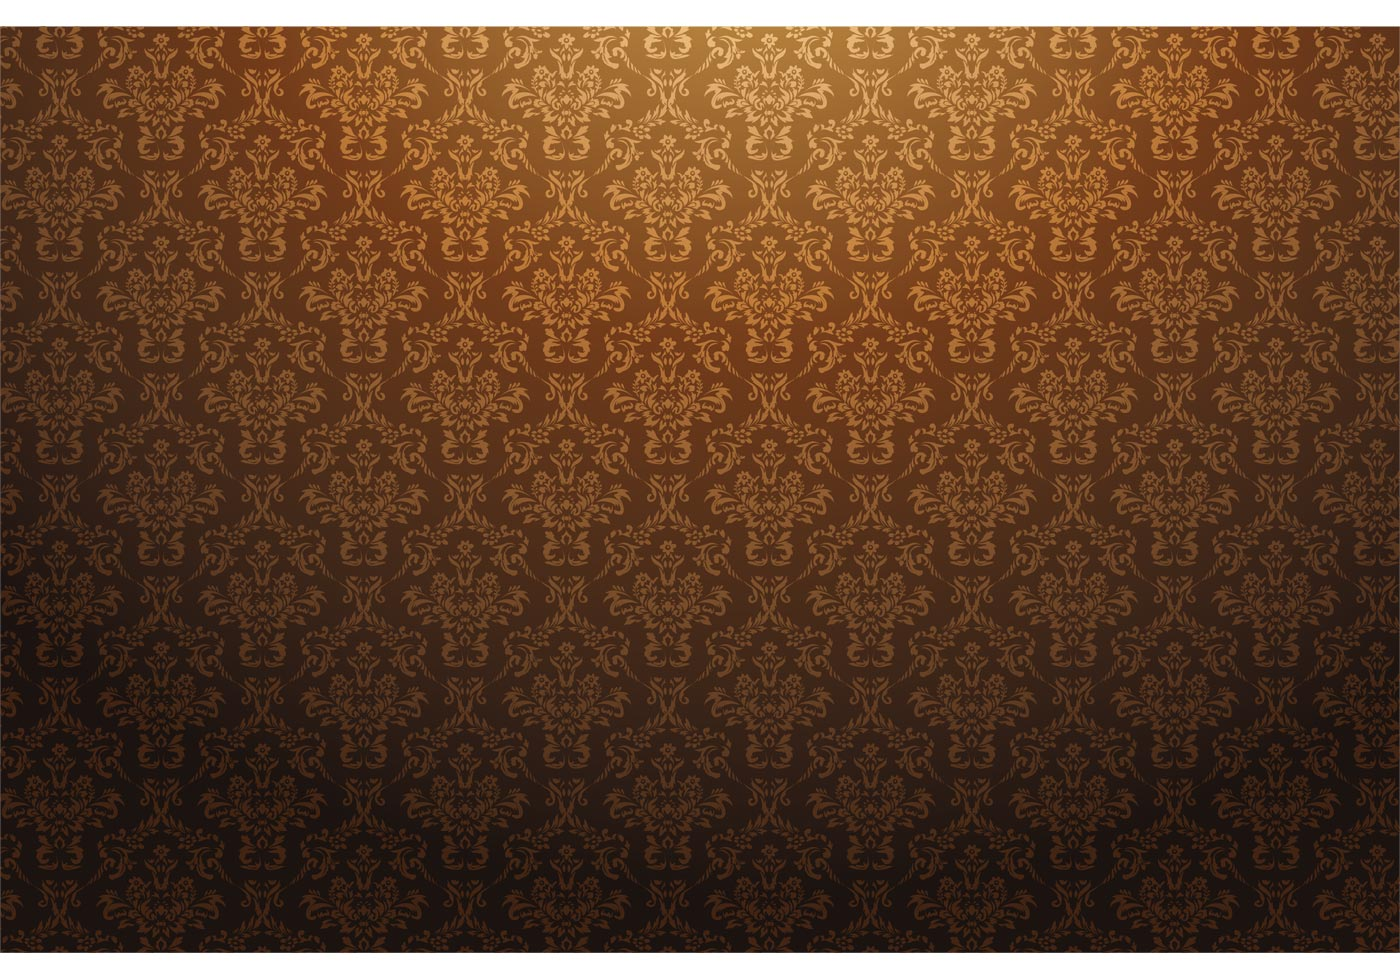 Fall Leaves Watercolor Wallpaper Baroque Seamless Pattern Download Free Vector Art Stock